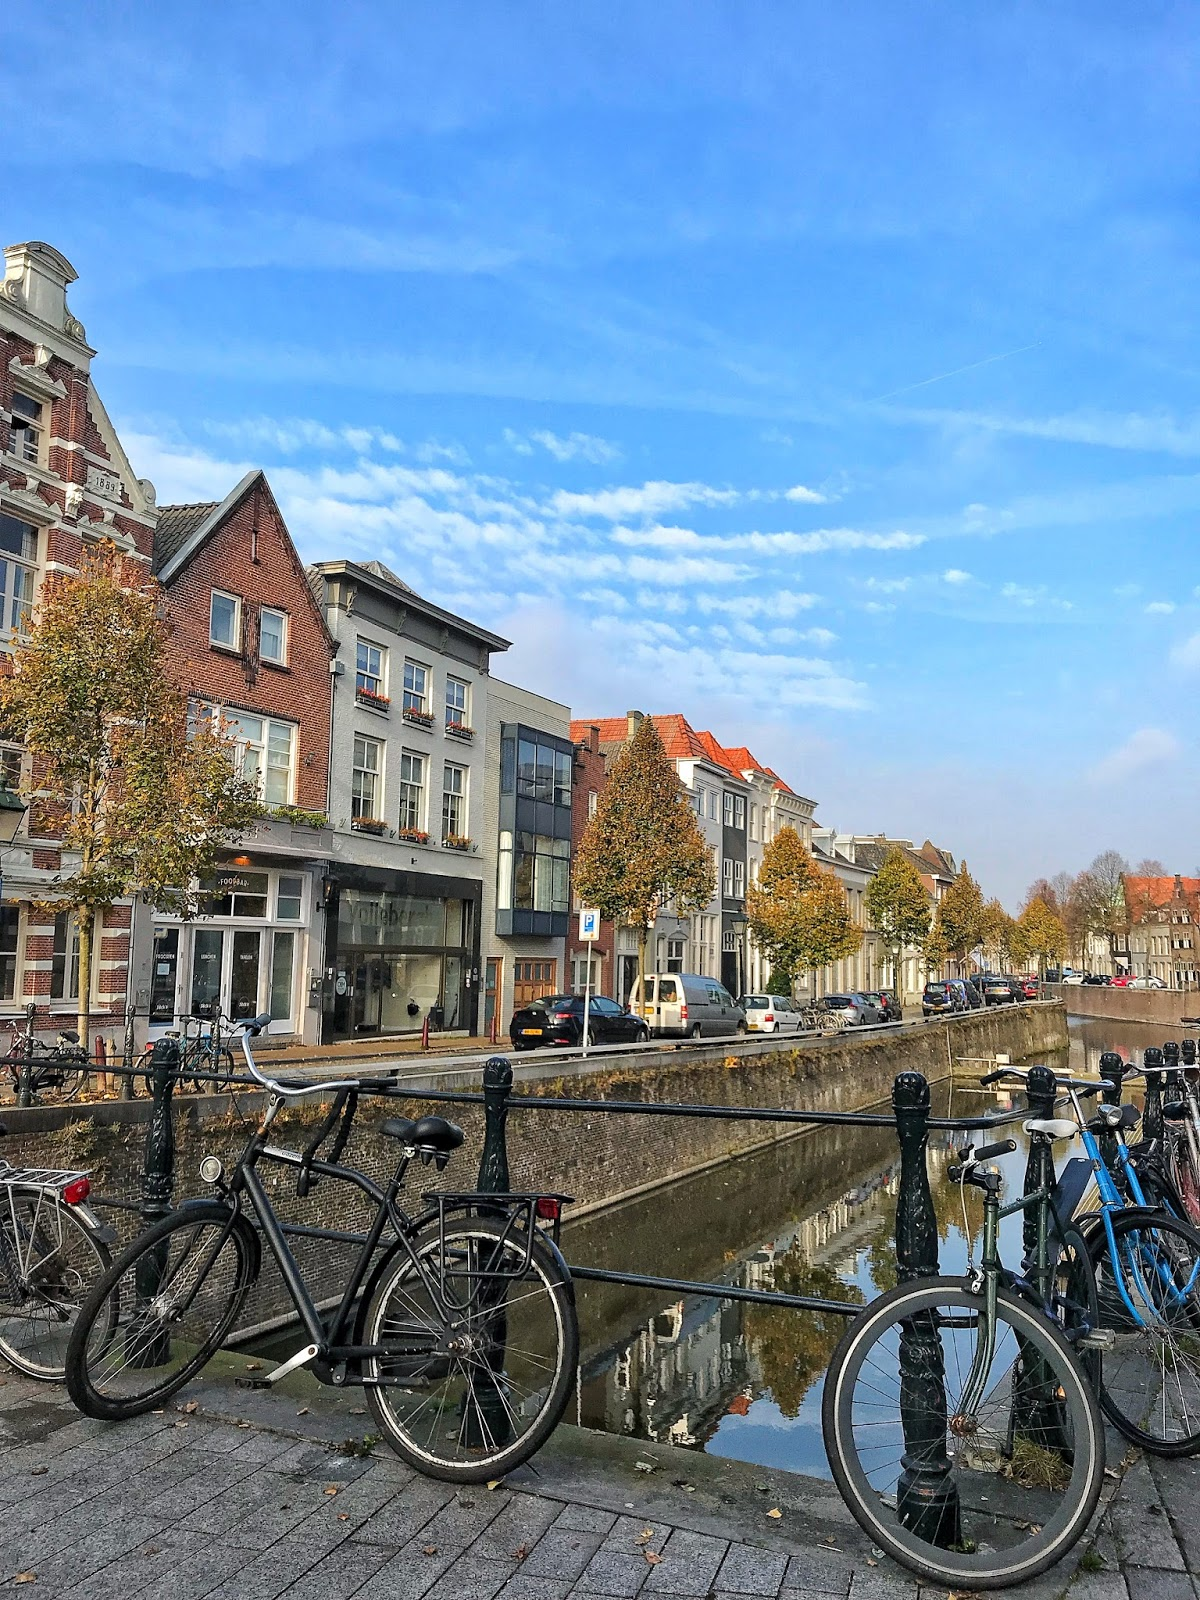 bikes and canal reflections Autumn in Den Bosch